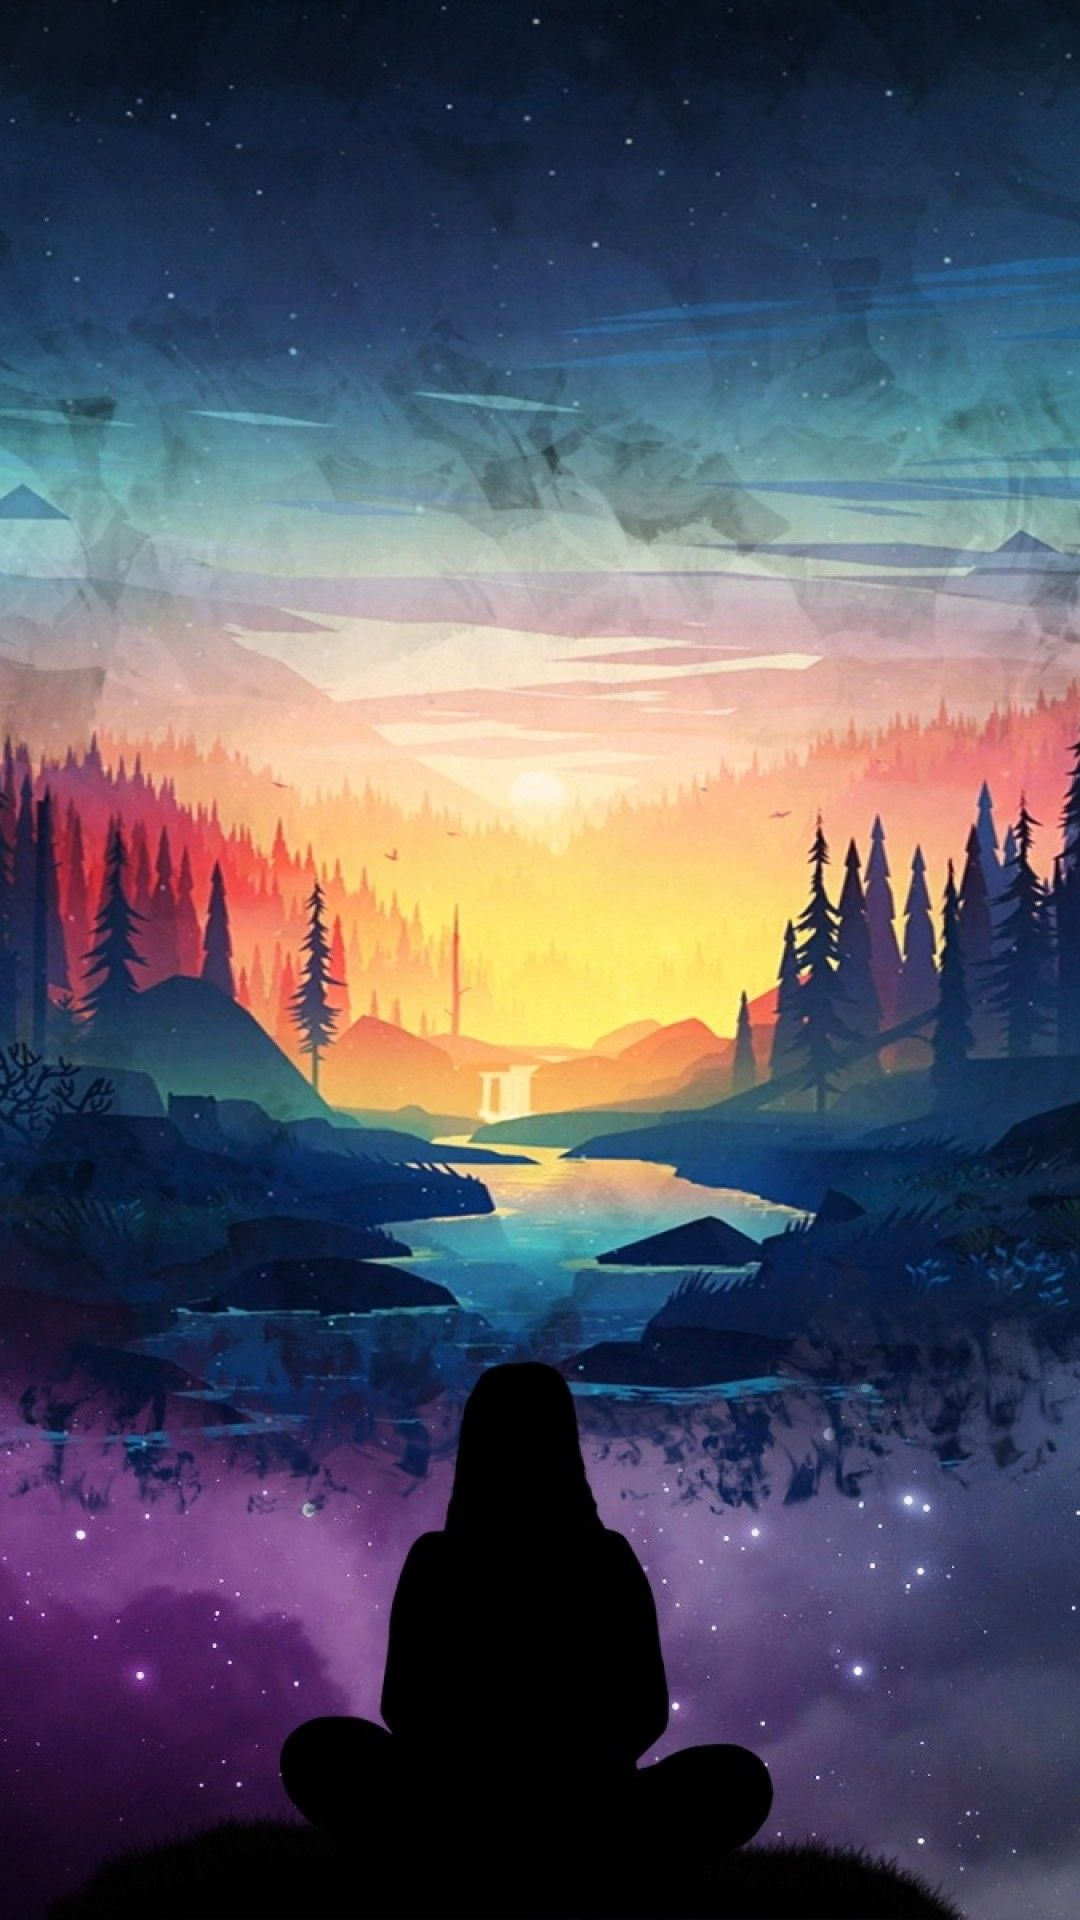 River, Girl, Silhouette, Forest, Scenic, Stars, Two